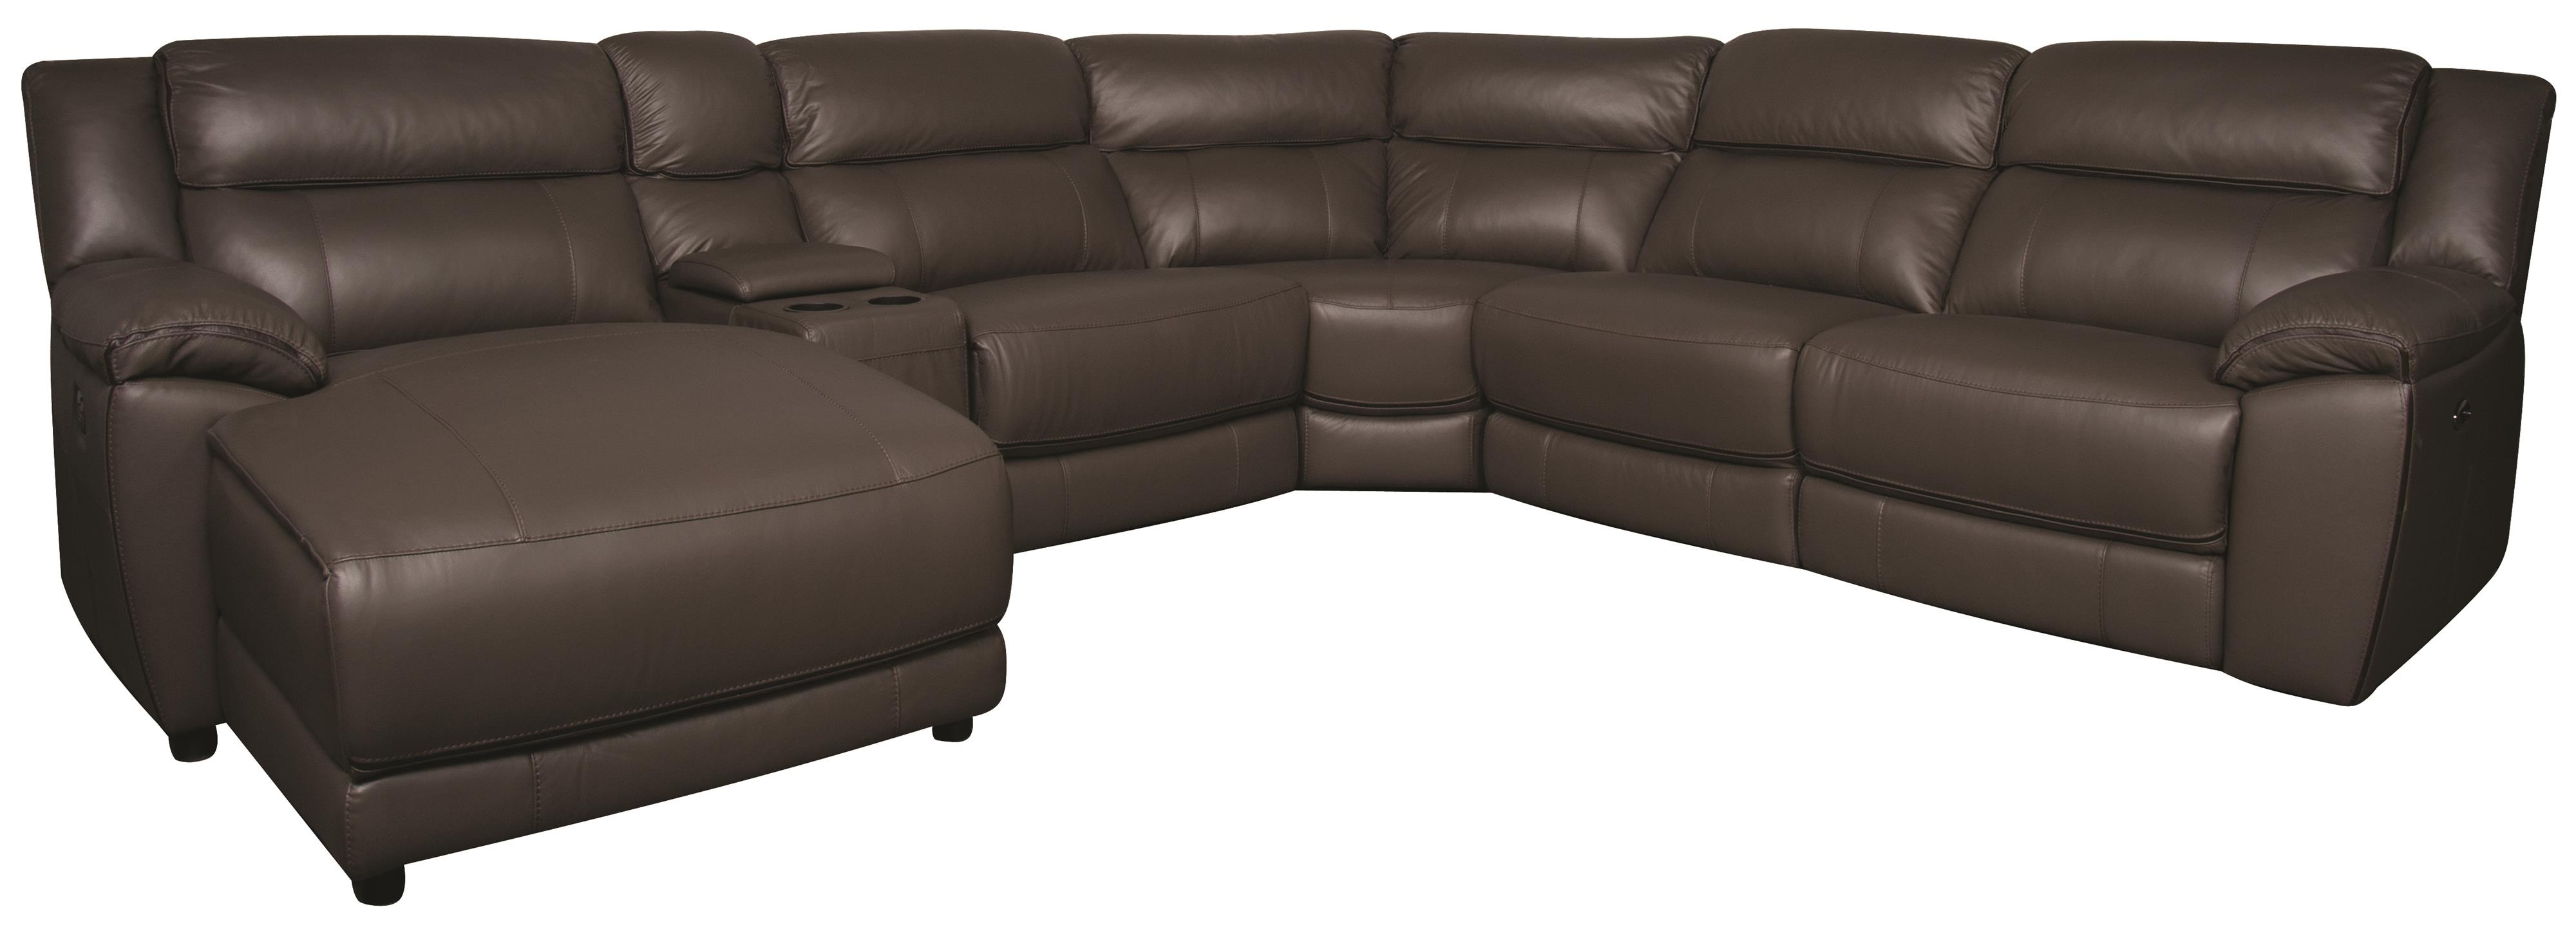 Morris Home Furnishings Ryder Ryder 6-Piece Leather-Match* Power Sectional - Item Number: 134846707